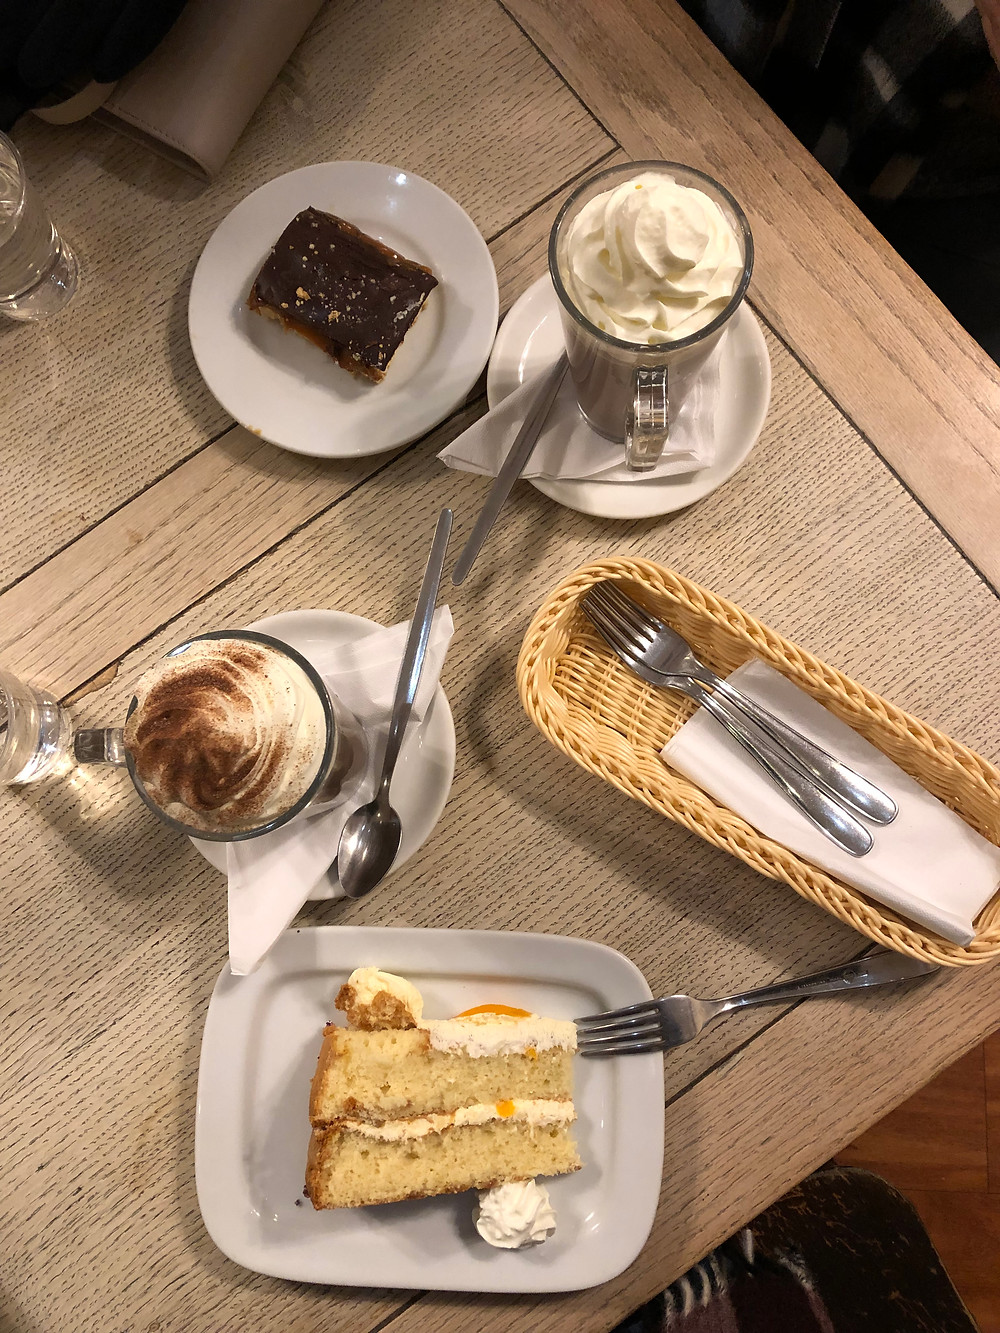 Millionaire shortbread, cake, and espressos in a cafe